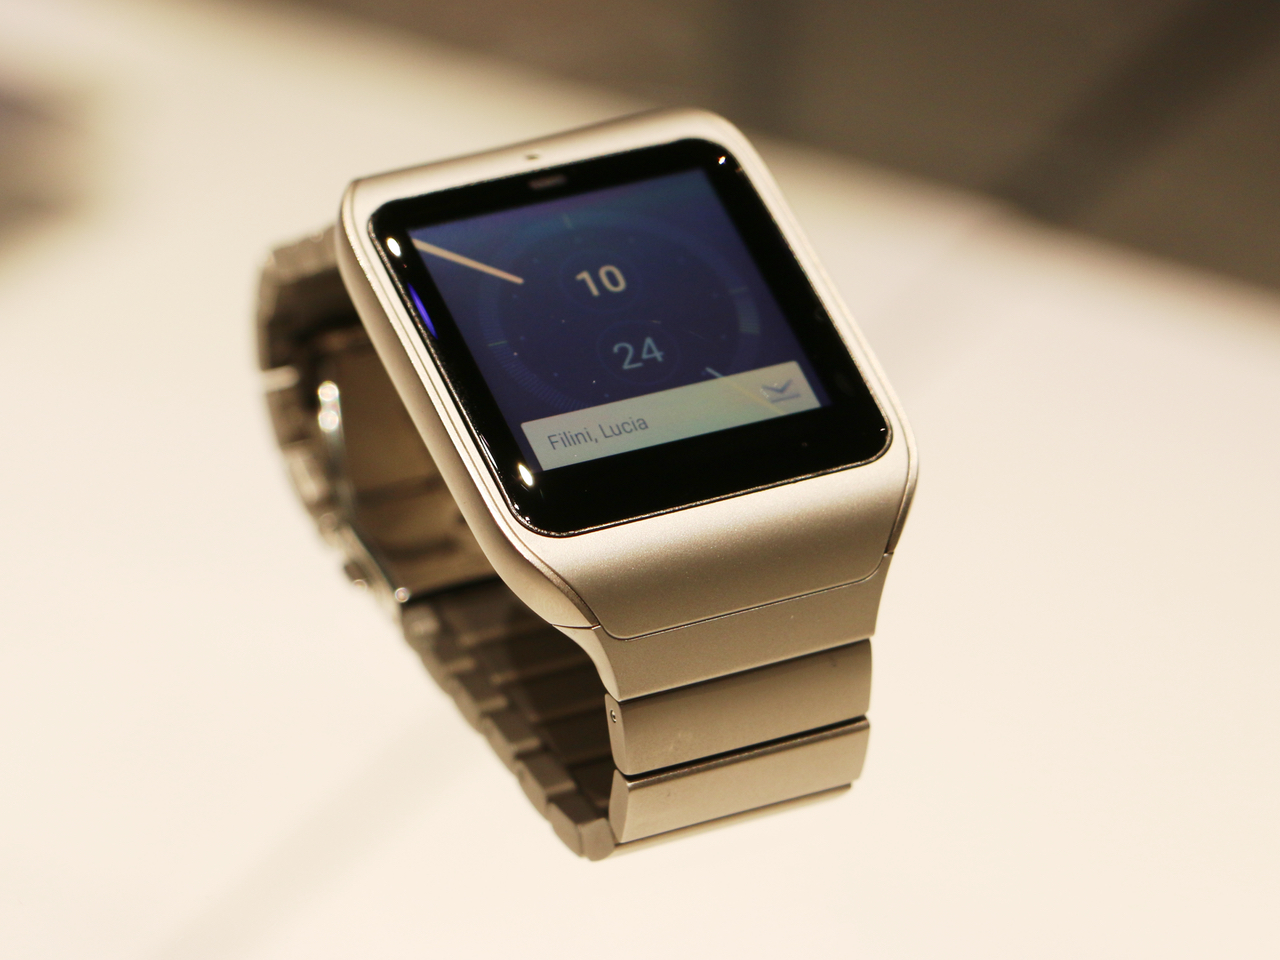 Sony Smartwatch 3 Gets Android Marshmallow - Finally - Smartwatch.me